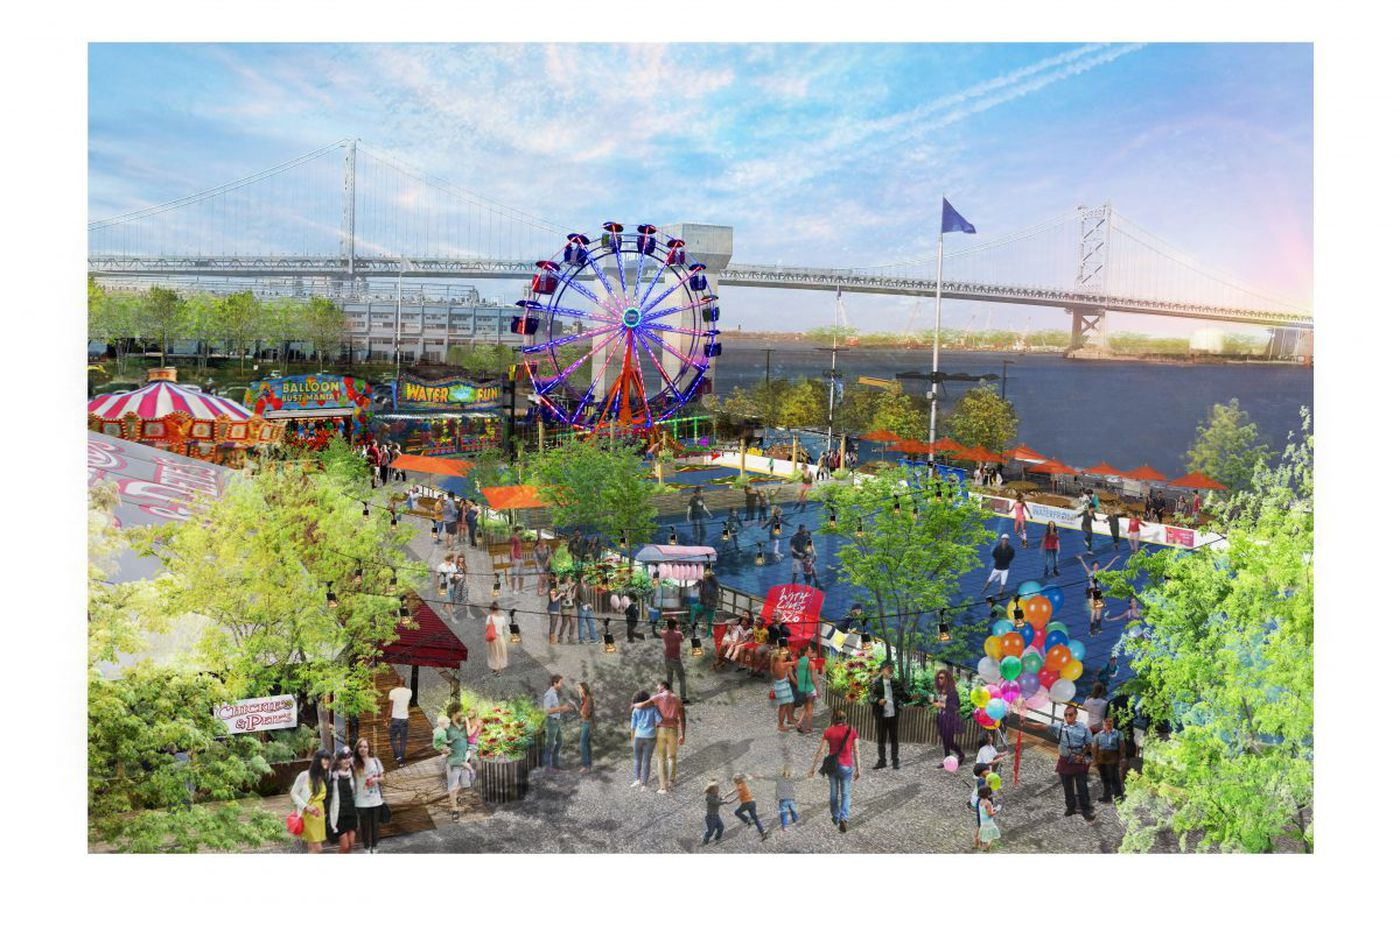 Thrill rides coming soon to Penn's Landing